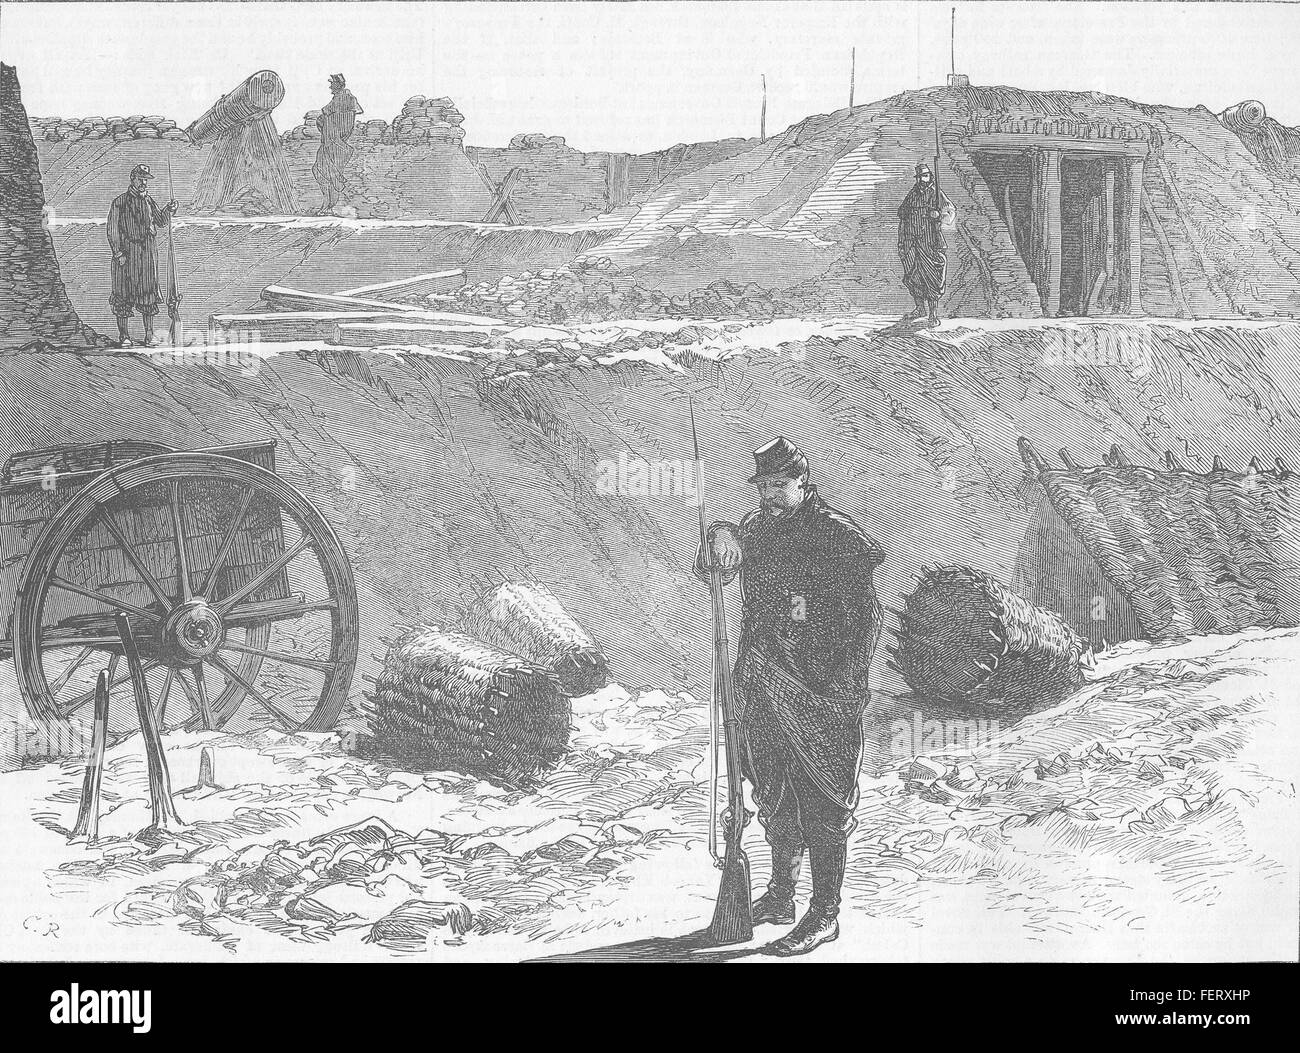 FRANCE Bastion occupied by Garde Sedentaire, Paris 1871. Illustrated London News - Stock Image